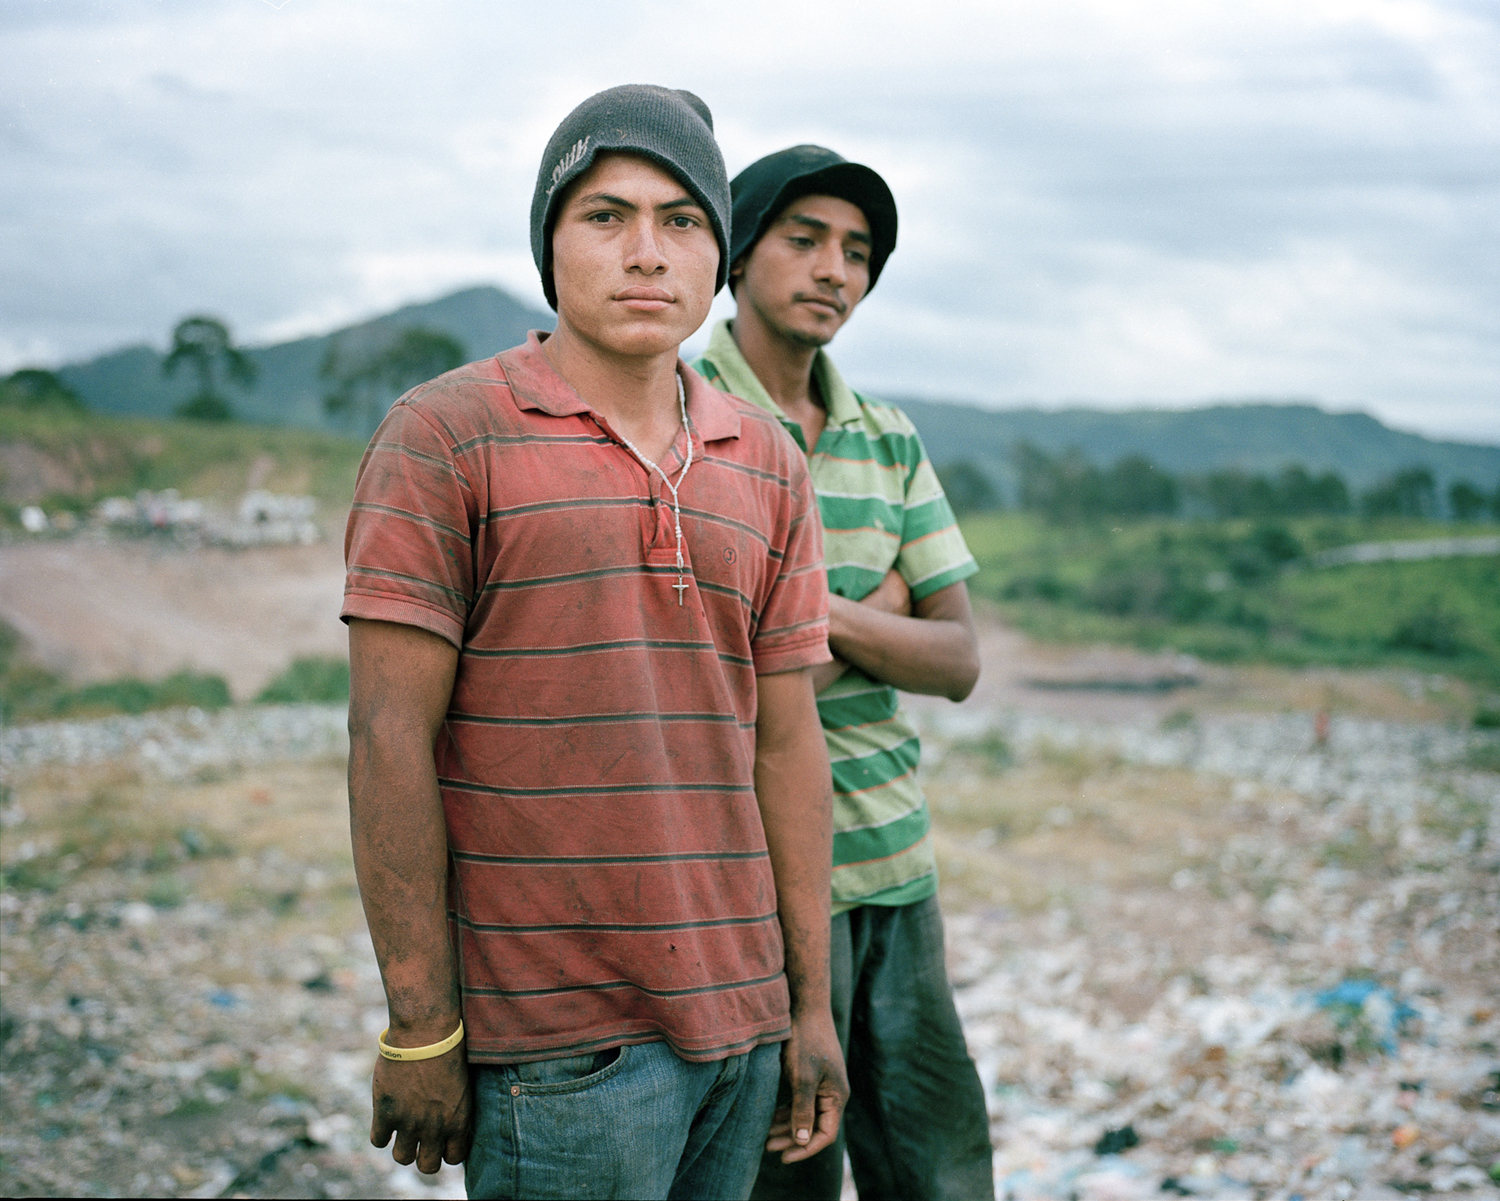 Angel and Gerson pose for a portrait in the municipal dump where they work in Tegucigalpa.